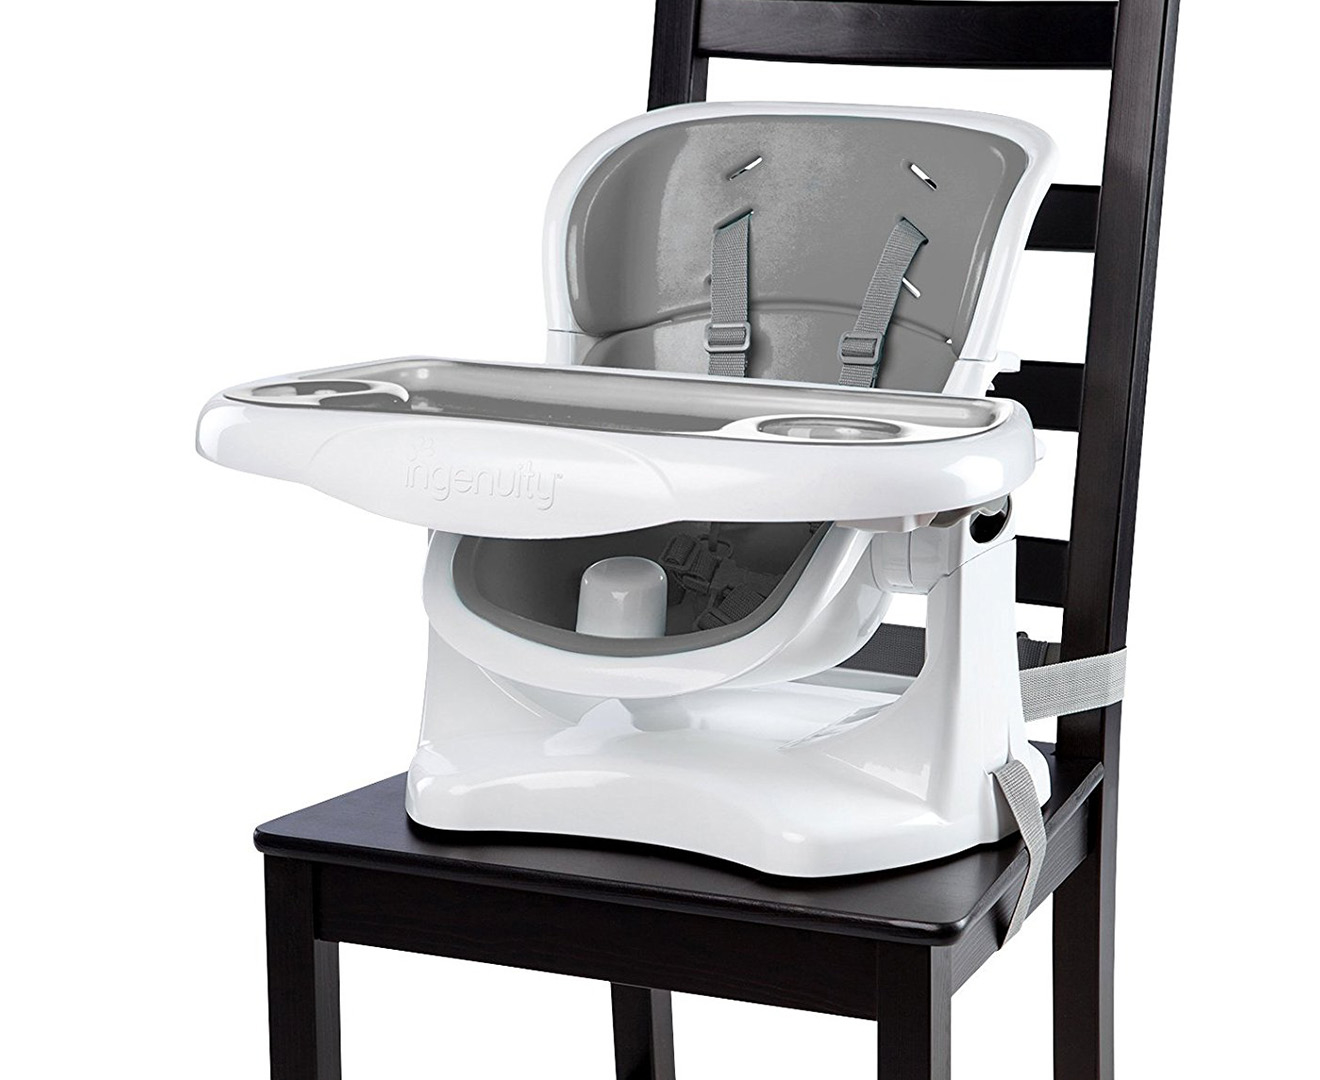 Ingenuity Smartclean Chairmate Chair Top High Chair